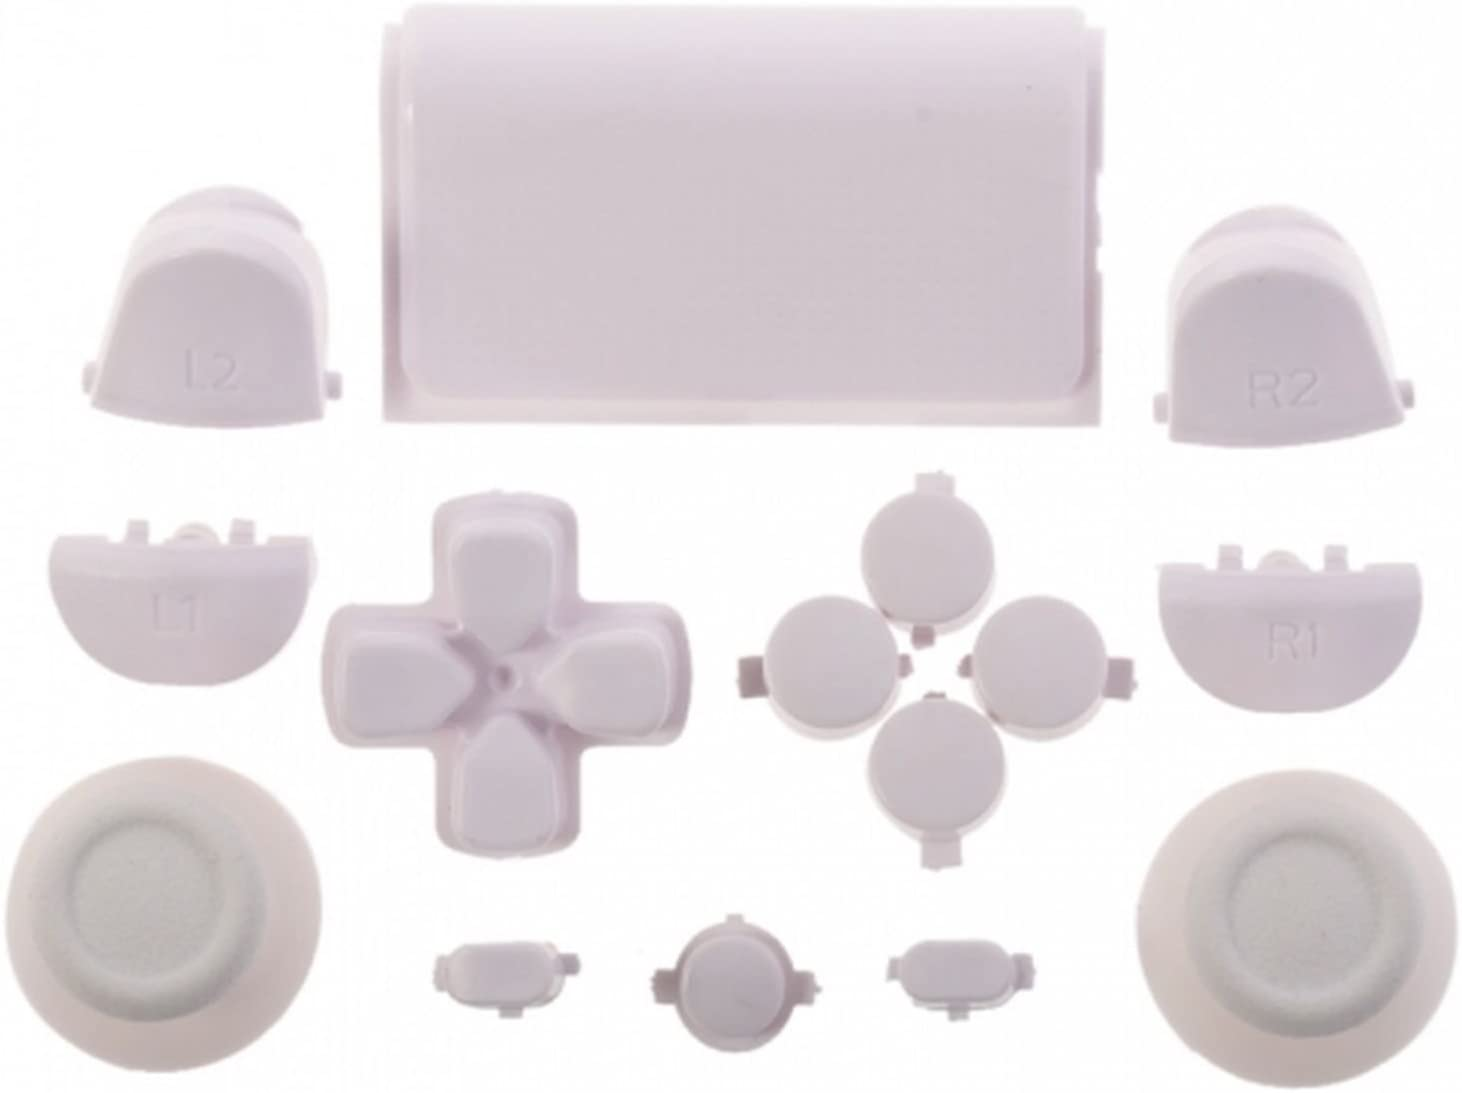 Replacement Full Buttons Custom Mod Kit Set for Sony Playstation 4 PS4 Controller (White)